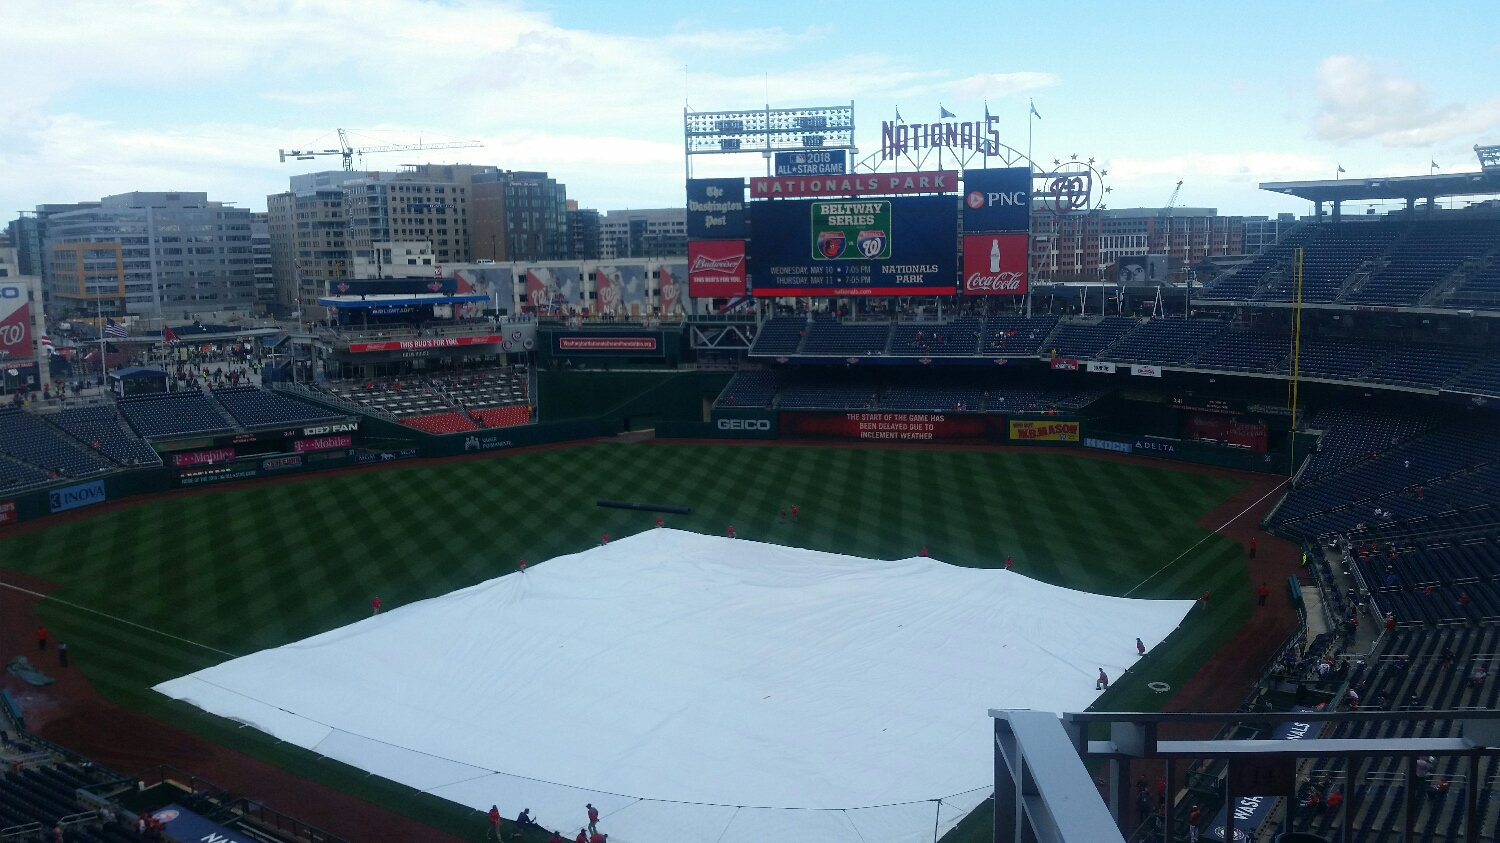 The was a rain delay before the start of the game.